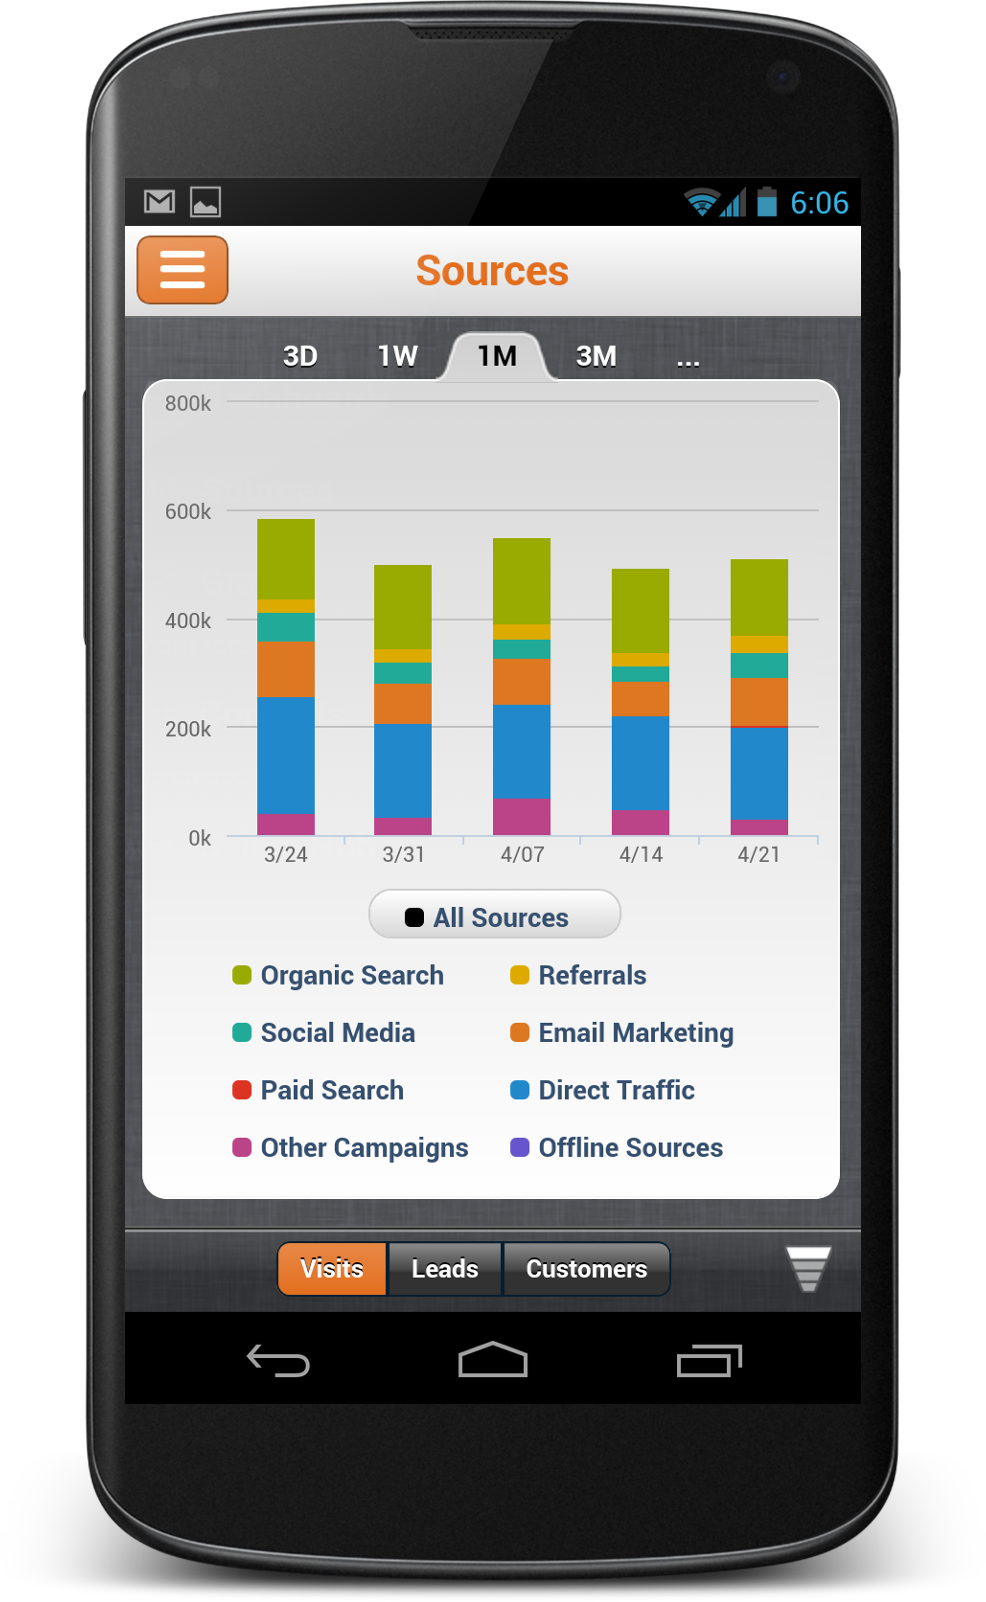 Introducing HubSpot's Android Mobile App